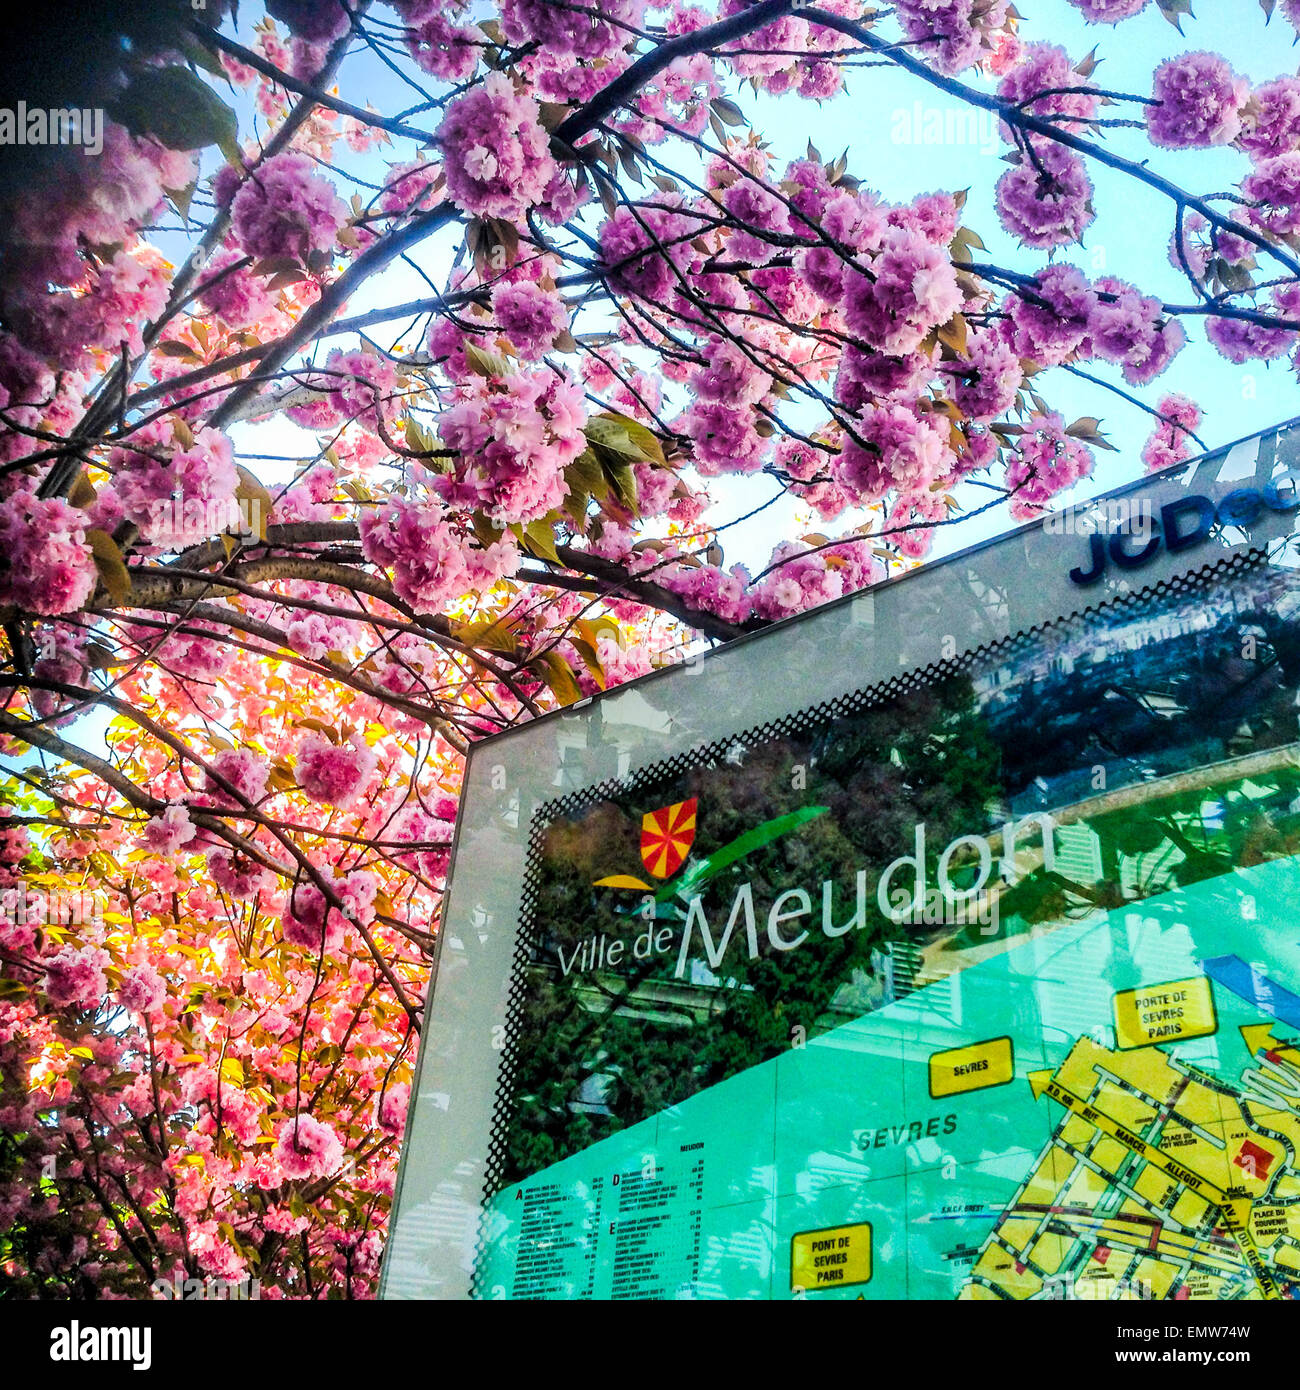 meudon france paris suburbs detail town sign with map cherry blossom tree